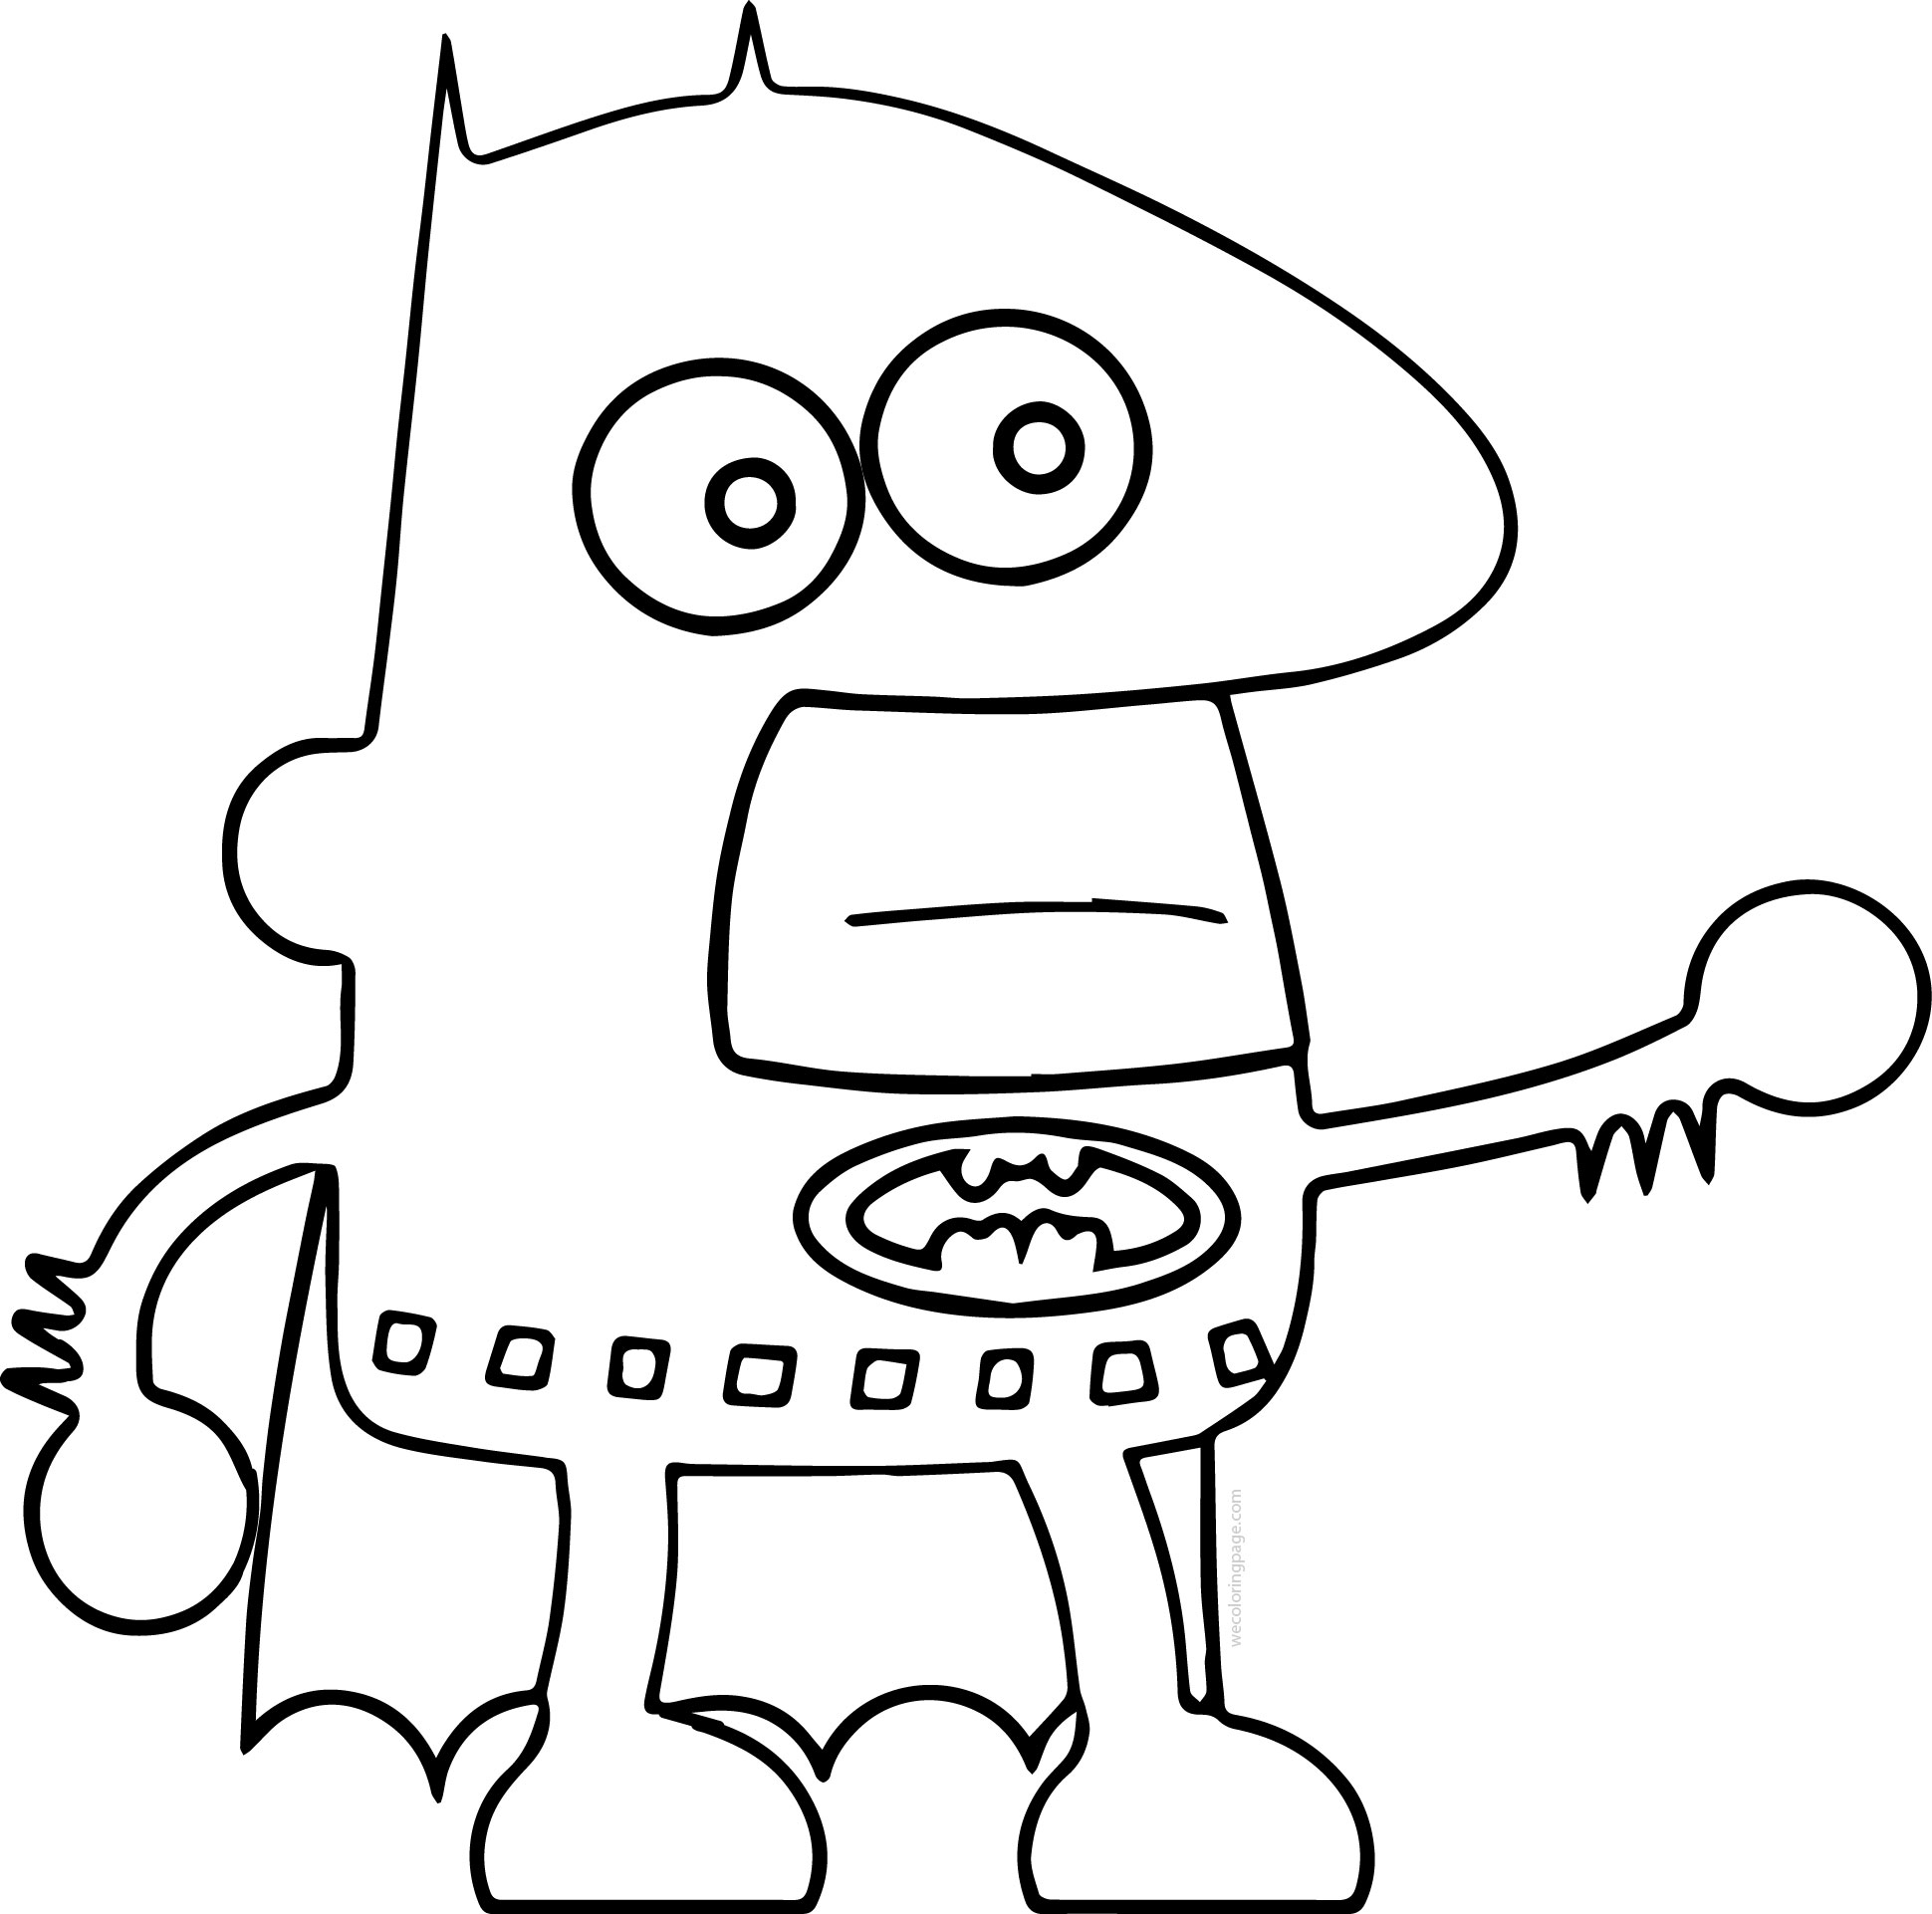 Batman Comics Cartoon Coloring Page